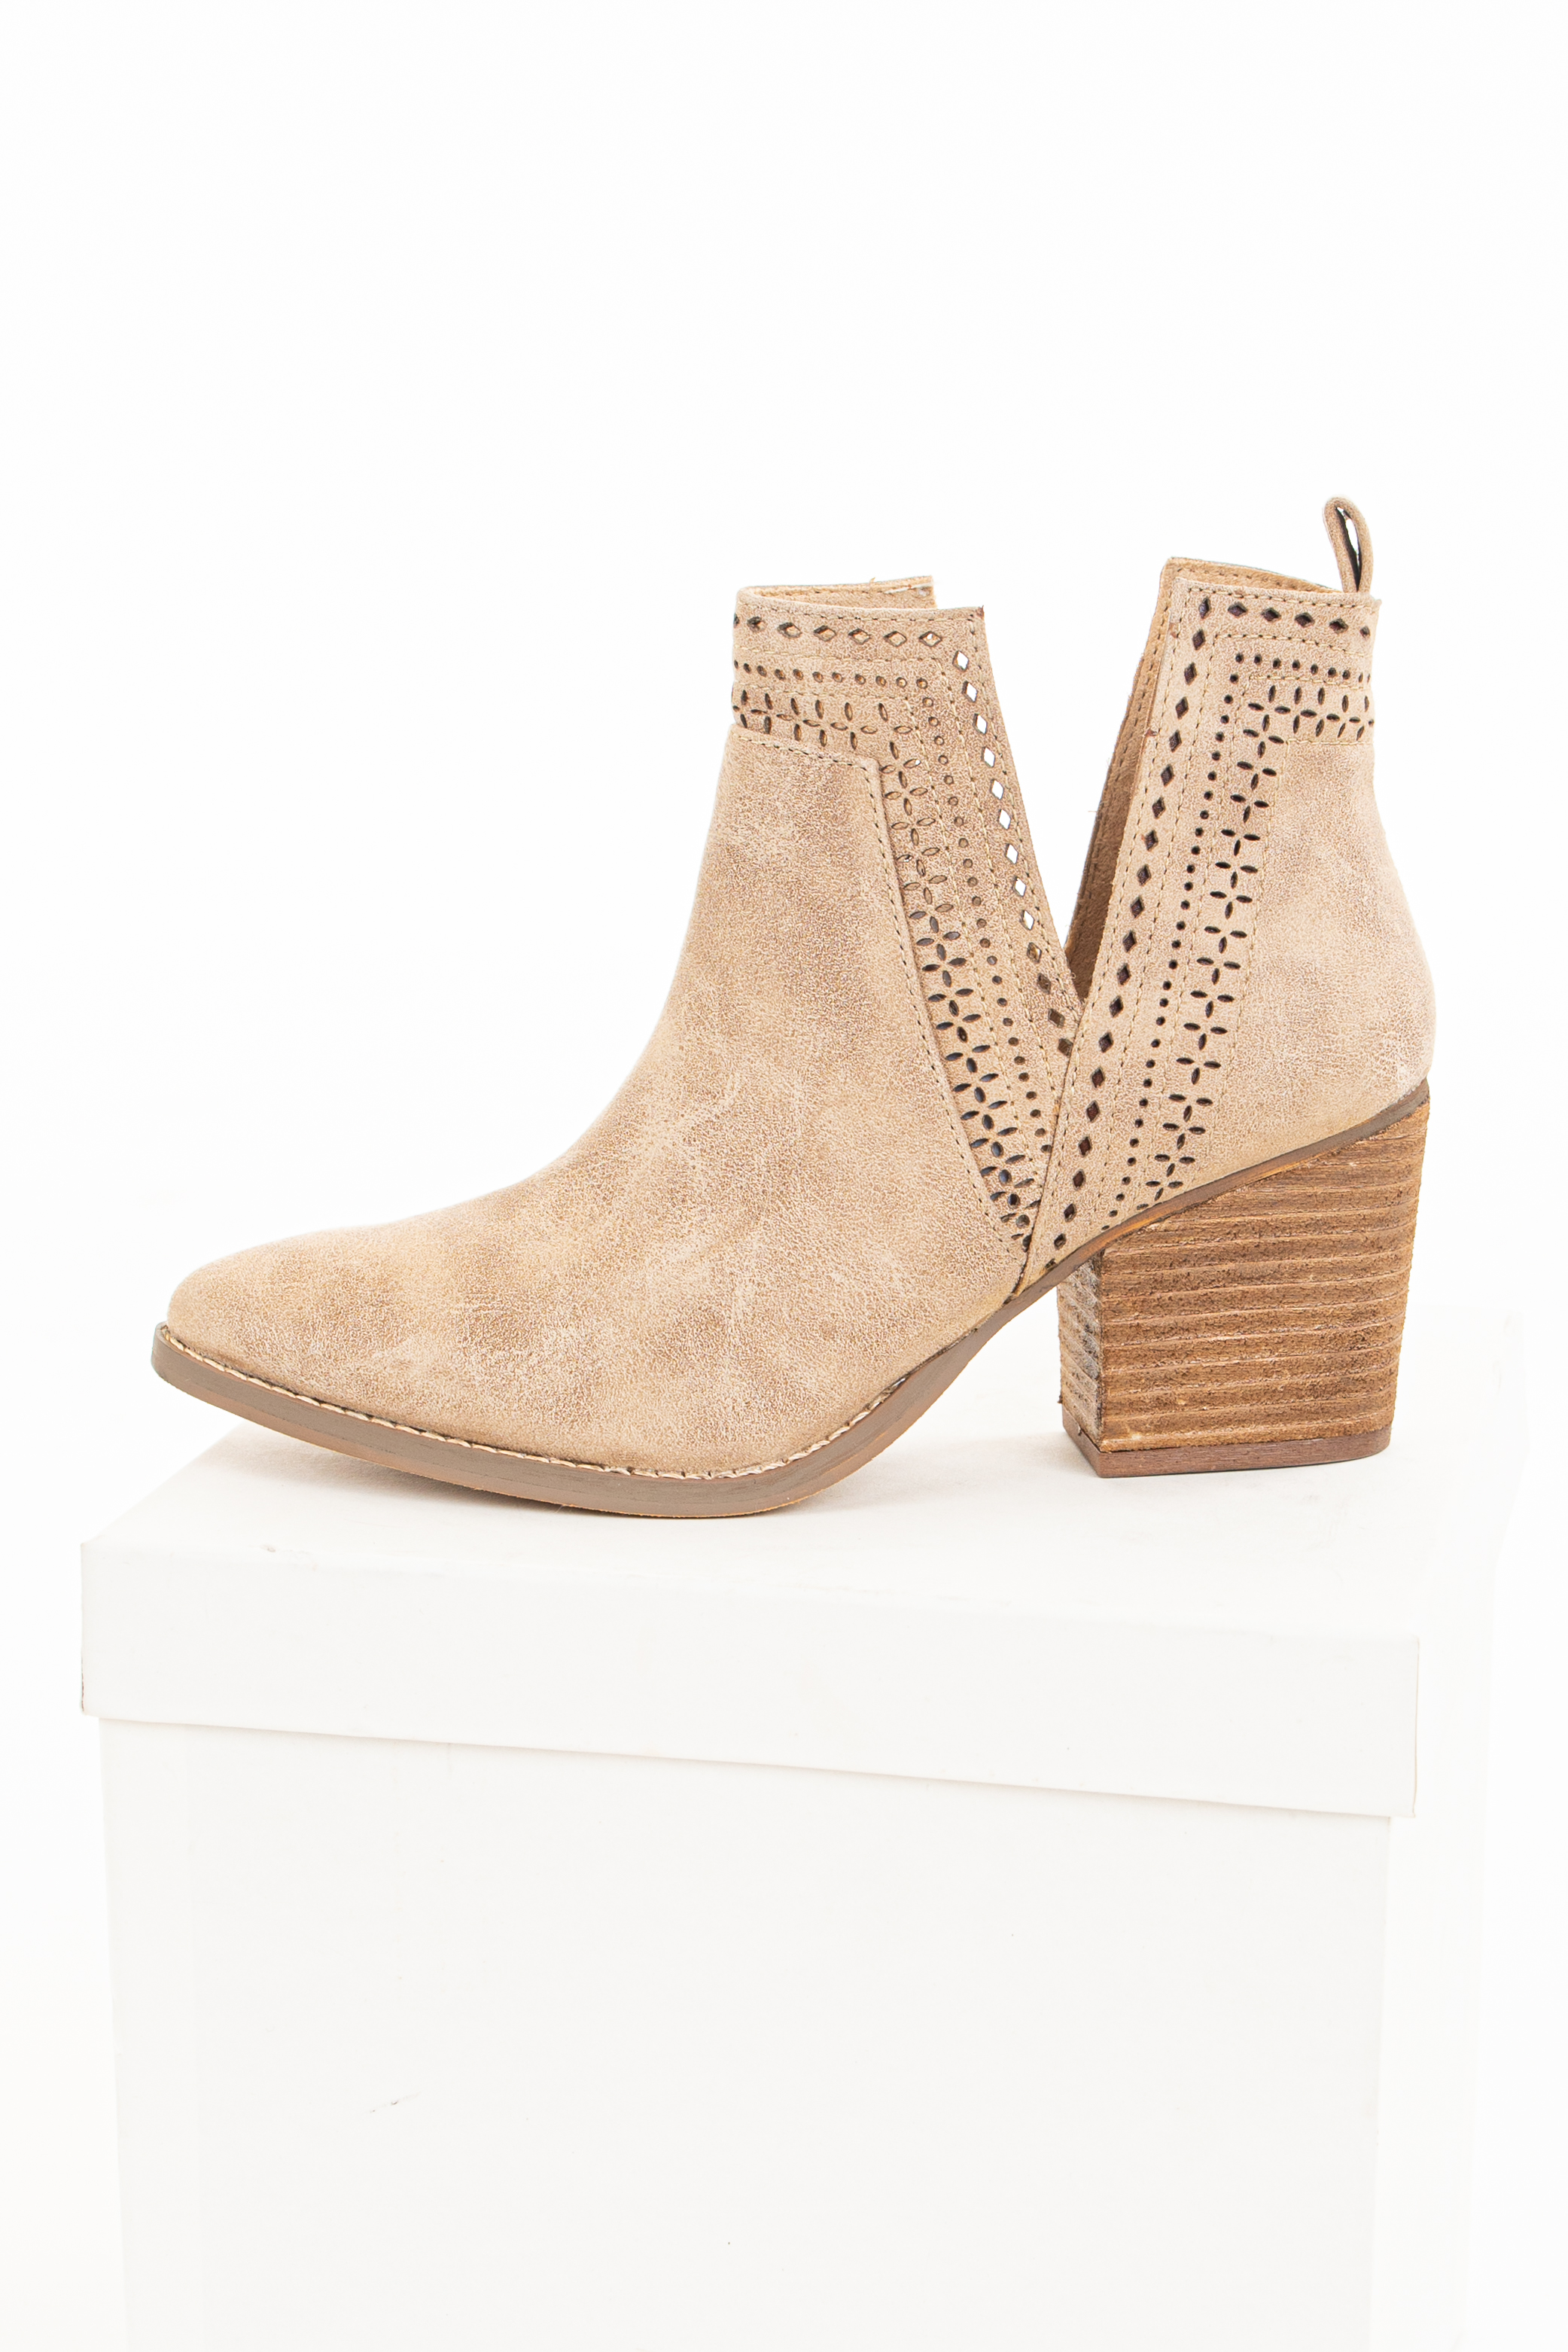 Cream High Heel Bootie with Perforated Details